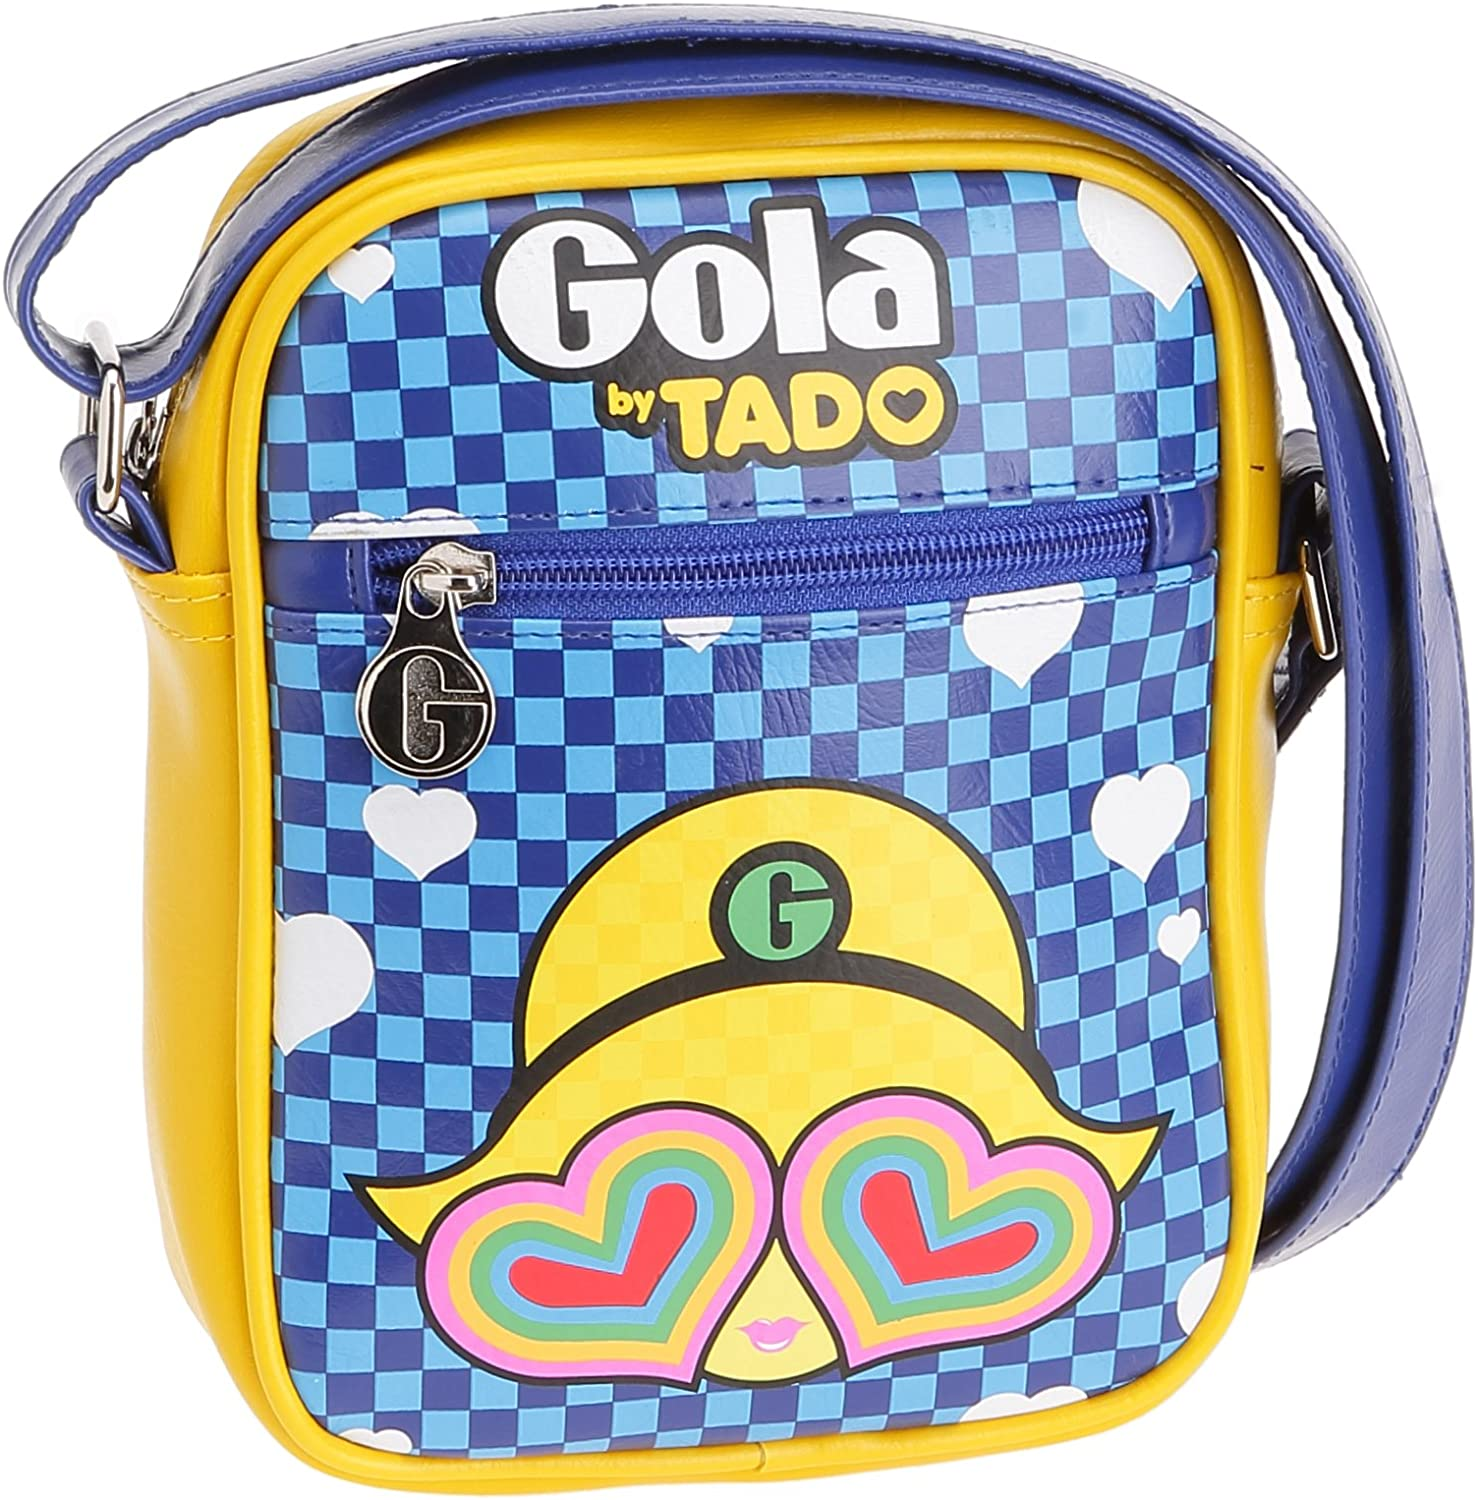 GOLA TUB188 MACLAINE BEAM Shoulder bag Women yellow blueE YELLOW MULTI UNI